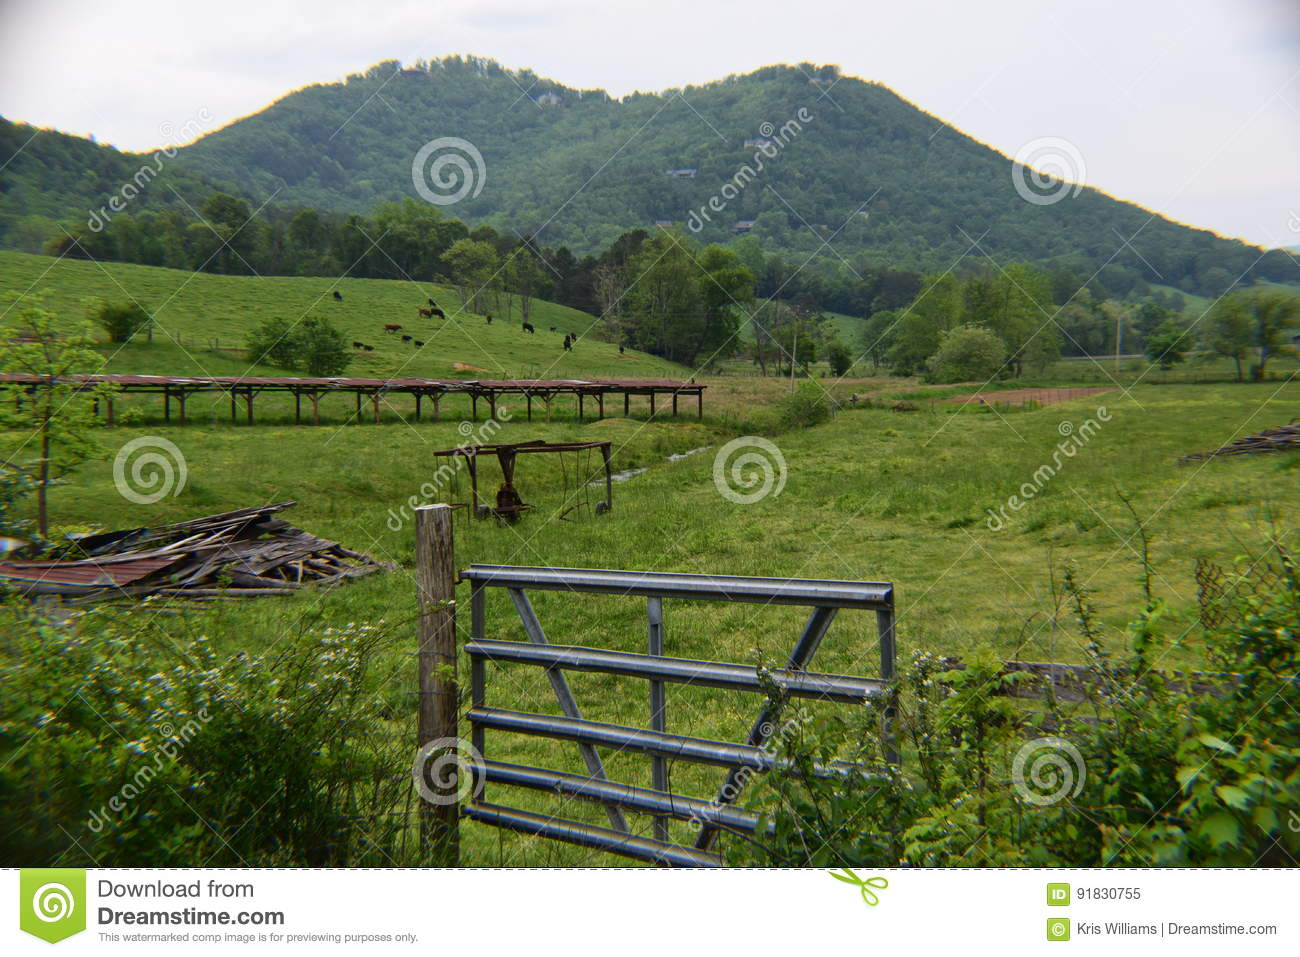 Western NC mountain cow pasture